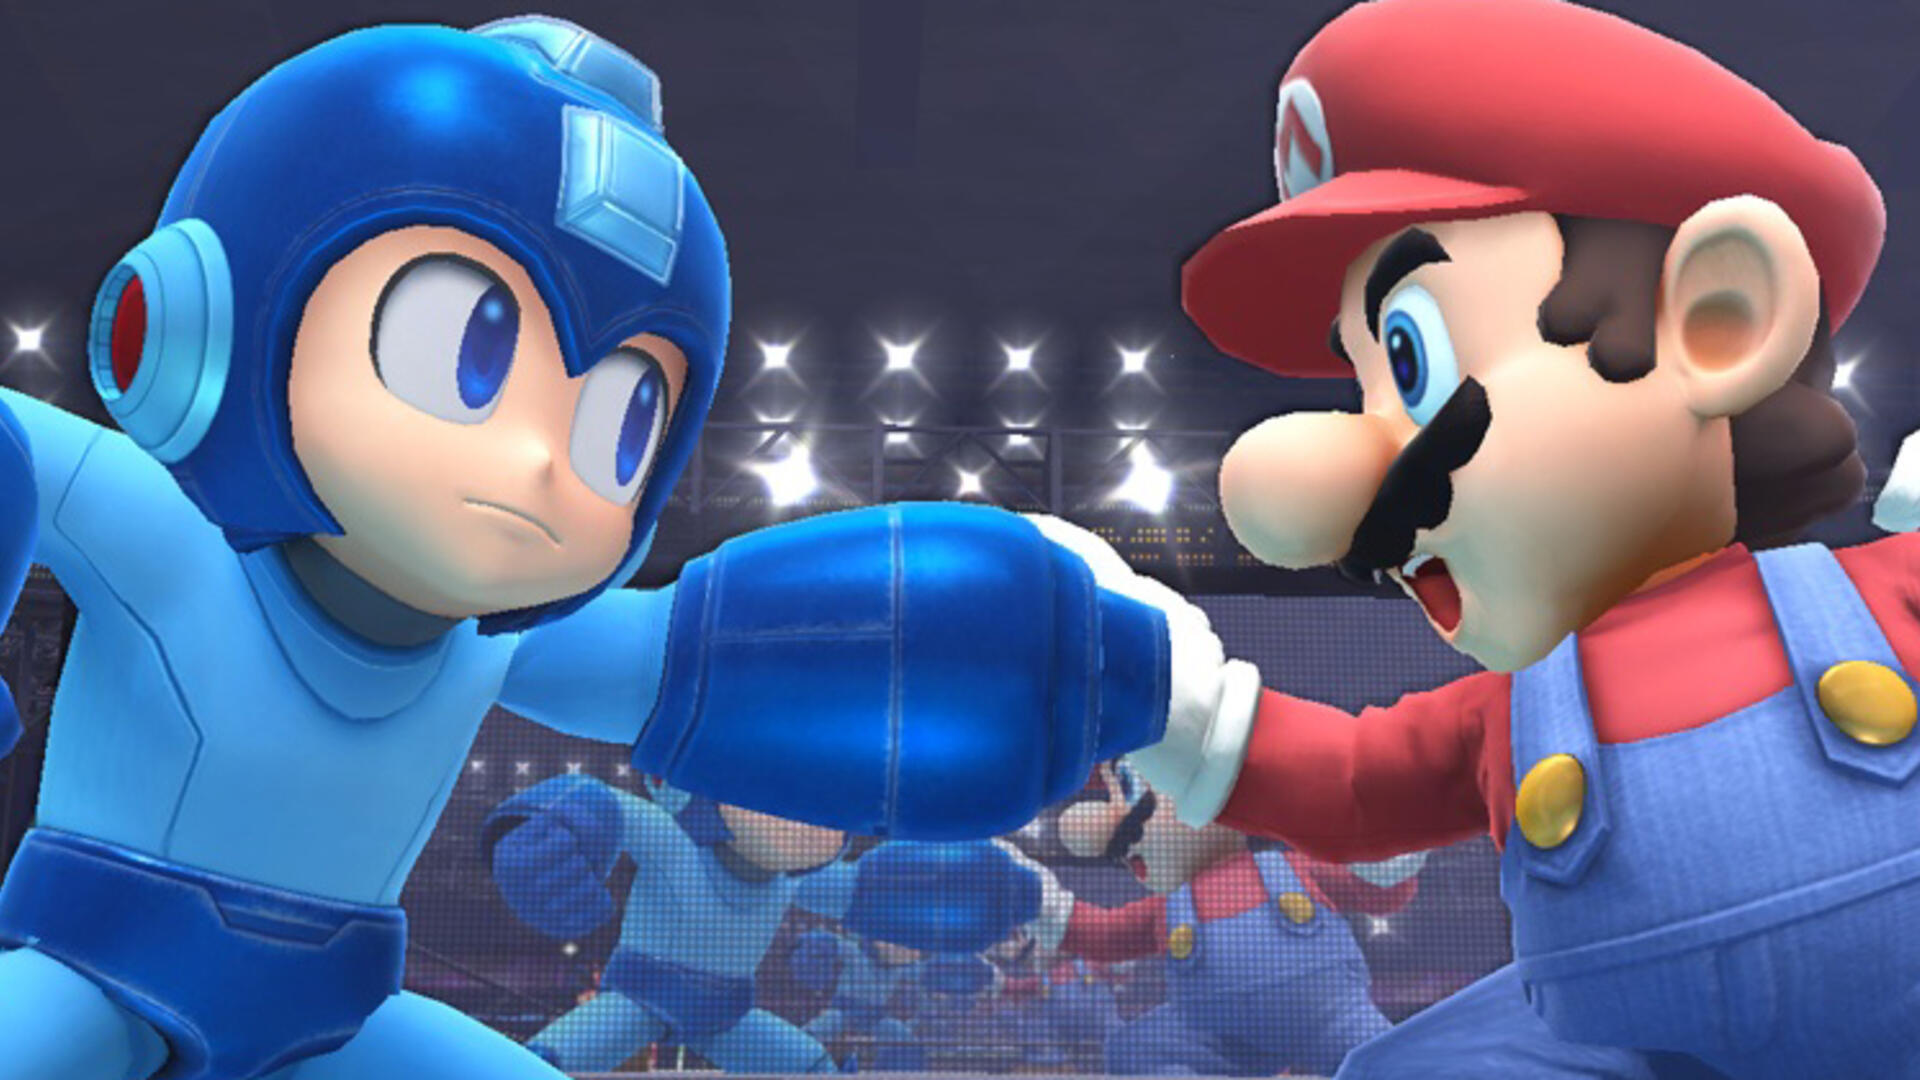 Super Smash Bros. Wii U Review: Now Witness Its True Form